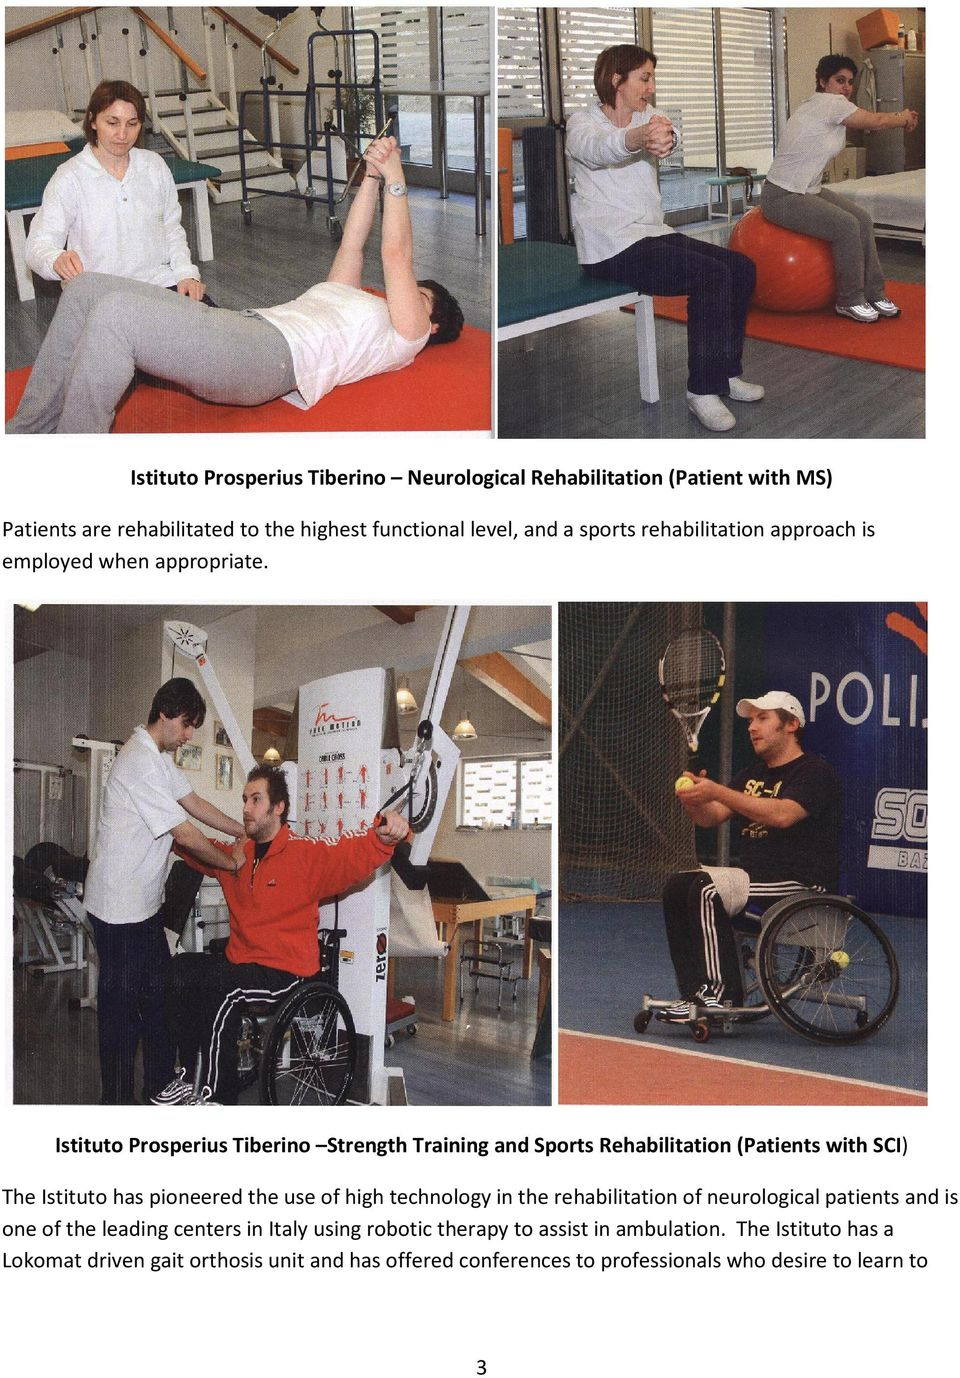 Istituto Prosperius Tiberino Strength Training and Sports Rehabilitation (Patients with SCI) The Istituto has pioneered the use of high technology in